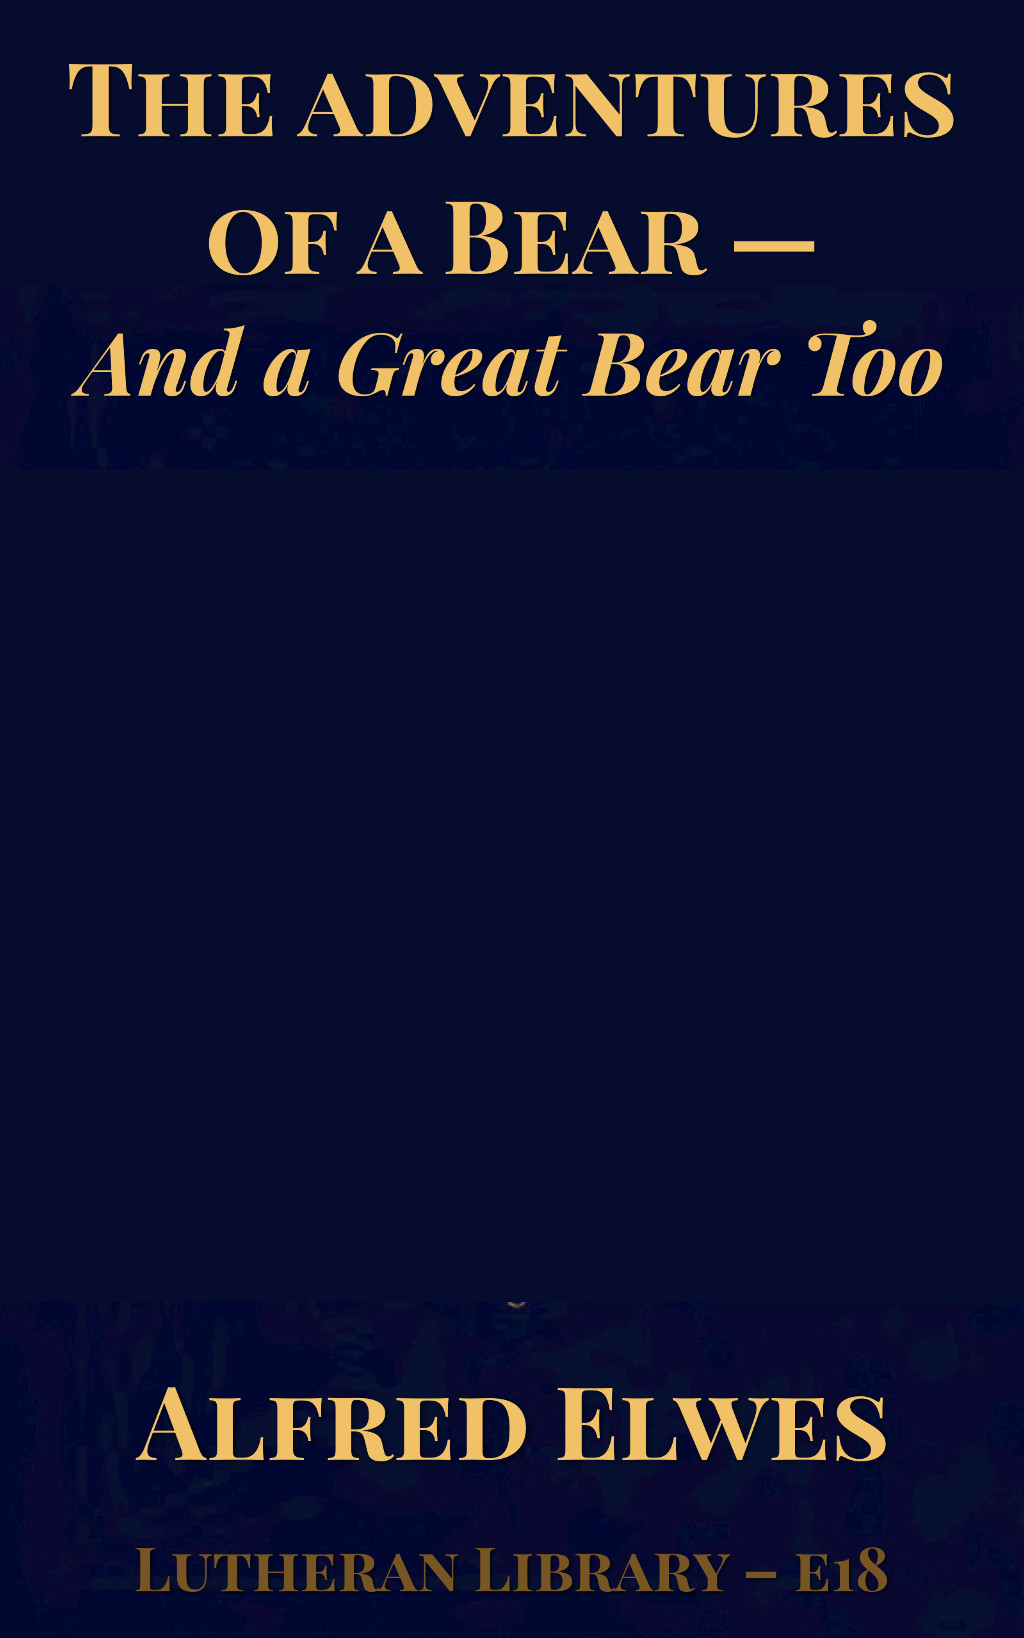 The Adventures of a Bear, and a Great Bear Too by Alfred Elwes